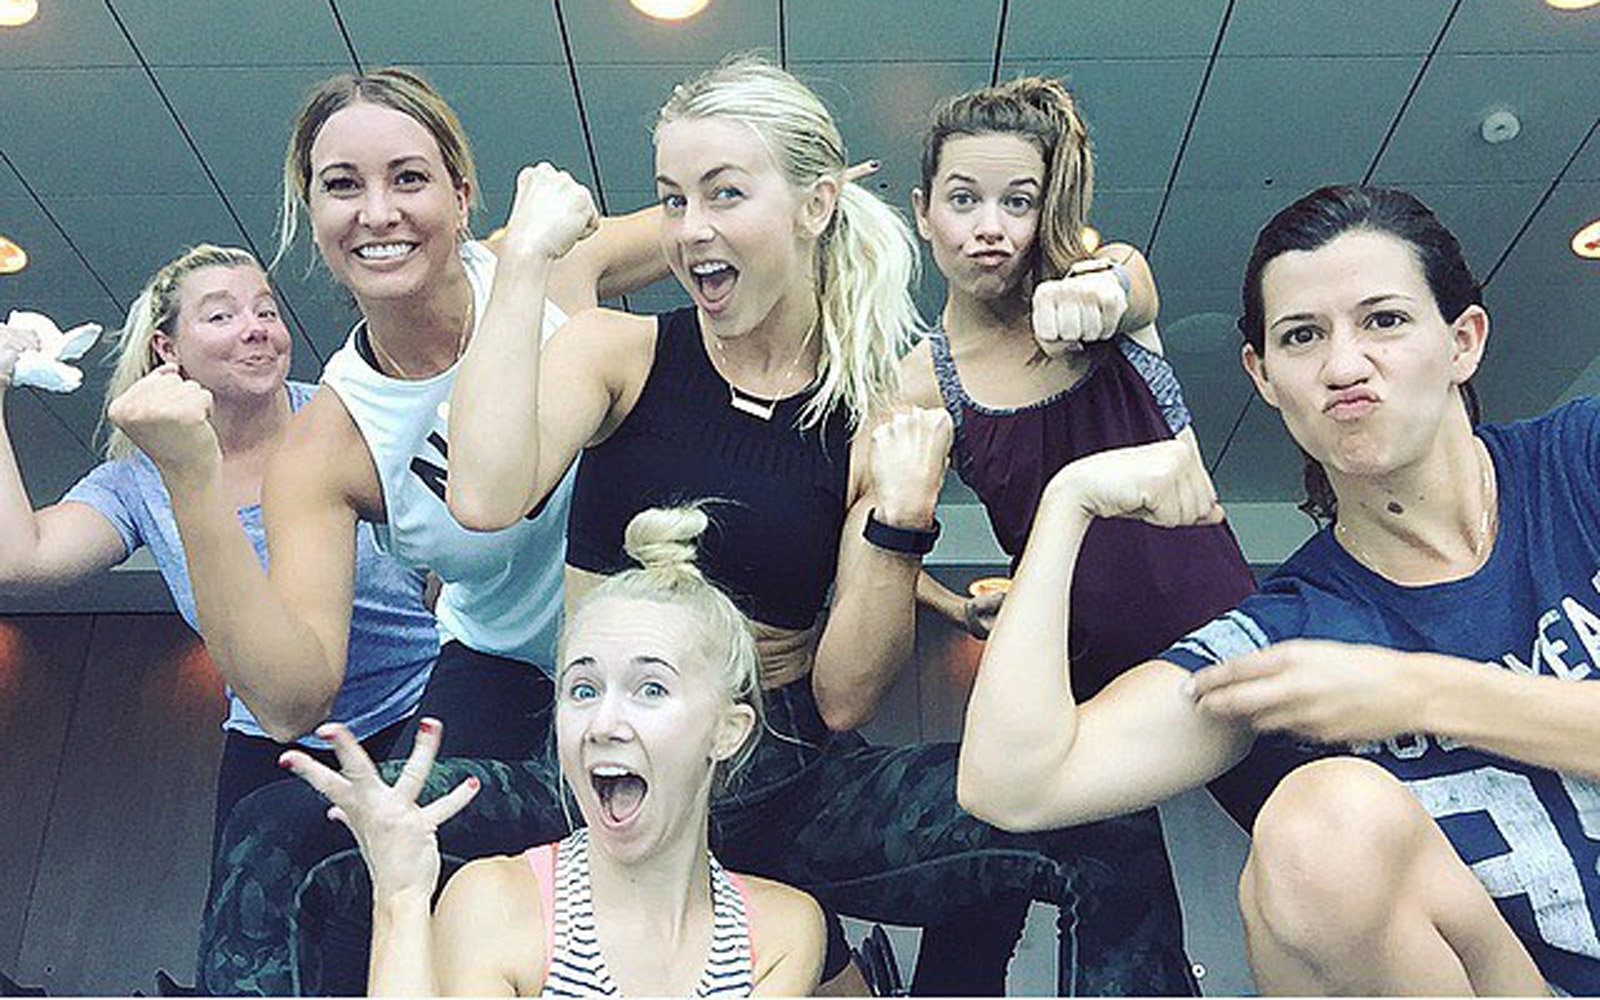 Julianne Hough working out with her friends